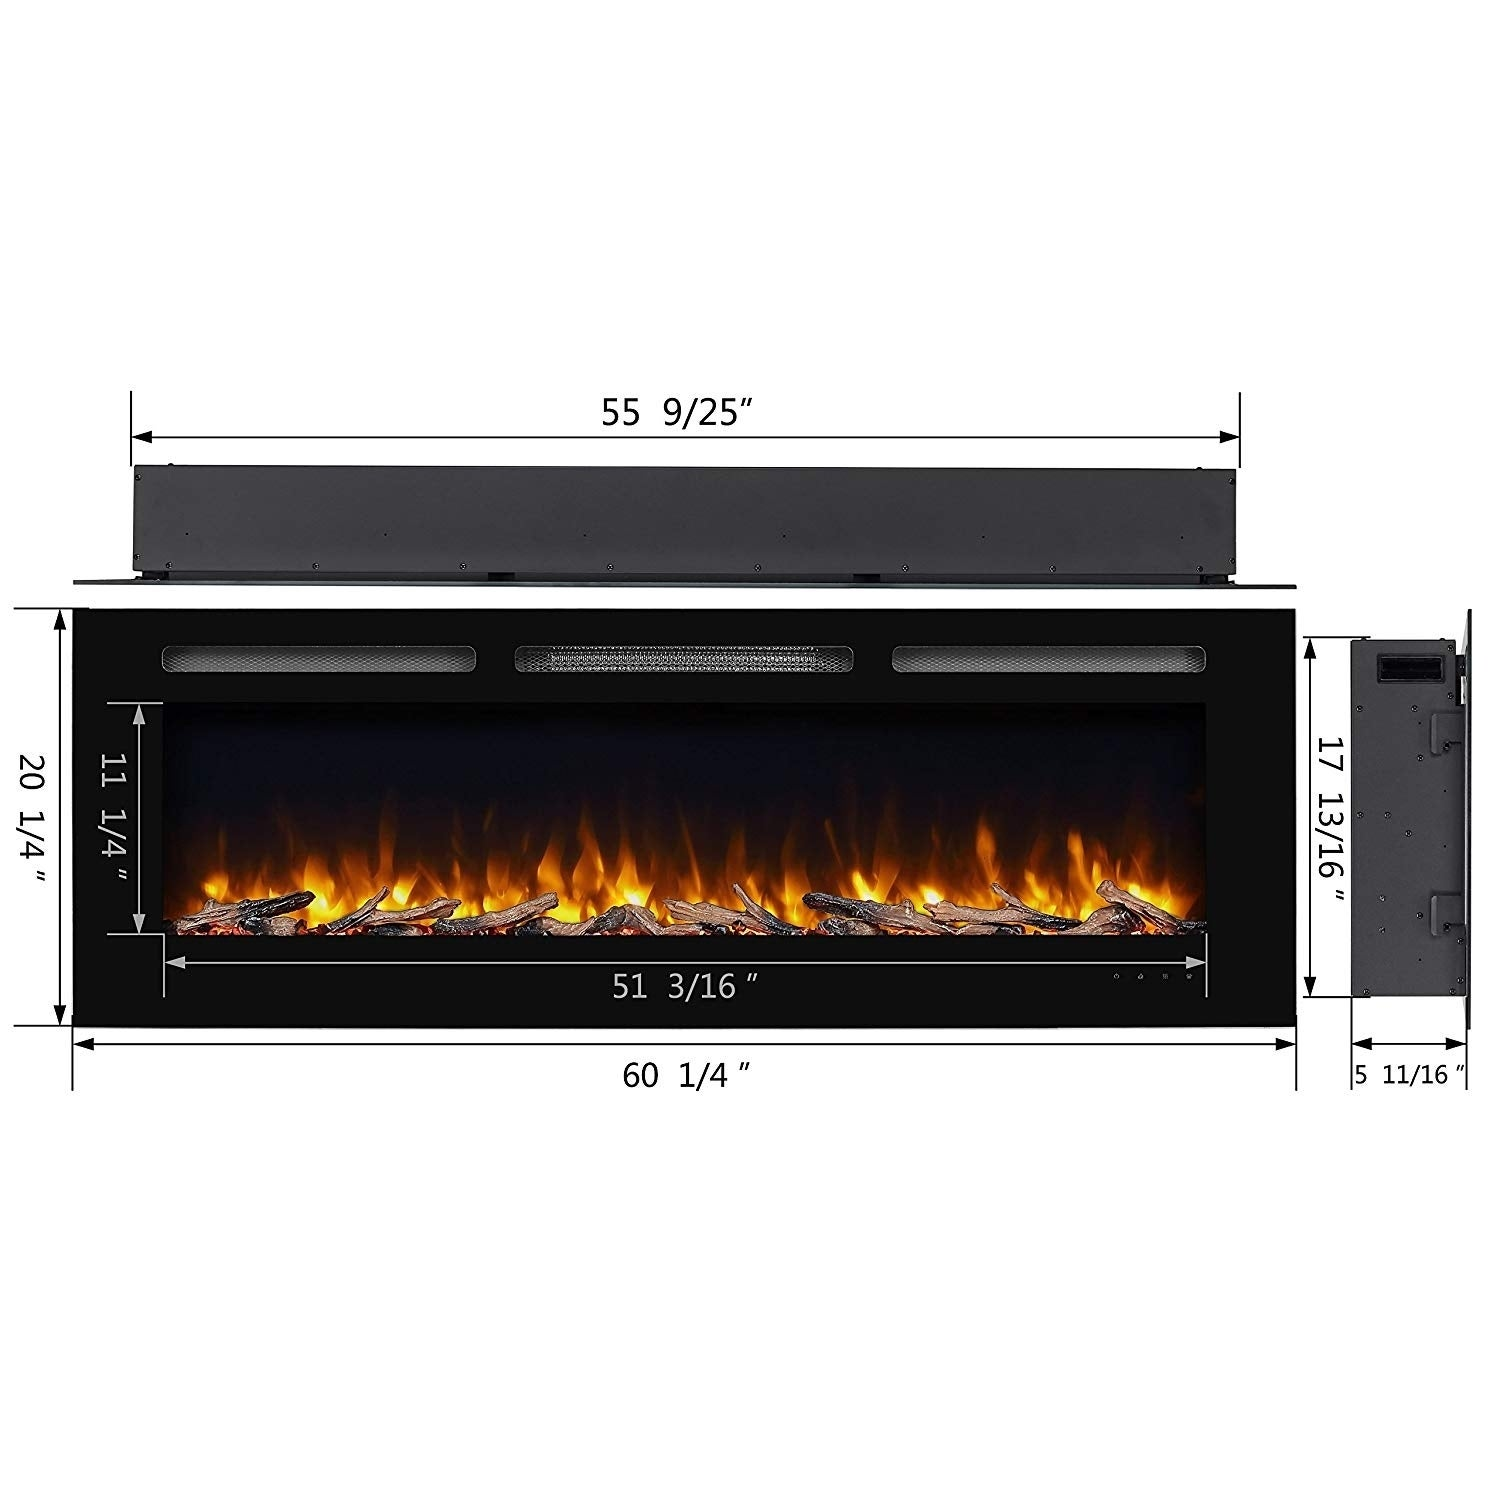 60 Alice In Wall Recessed Electric Fireplace 1500W Black 667c3b68 34f7 431a 8309 db7c615cc93a